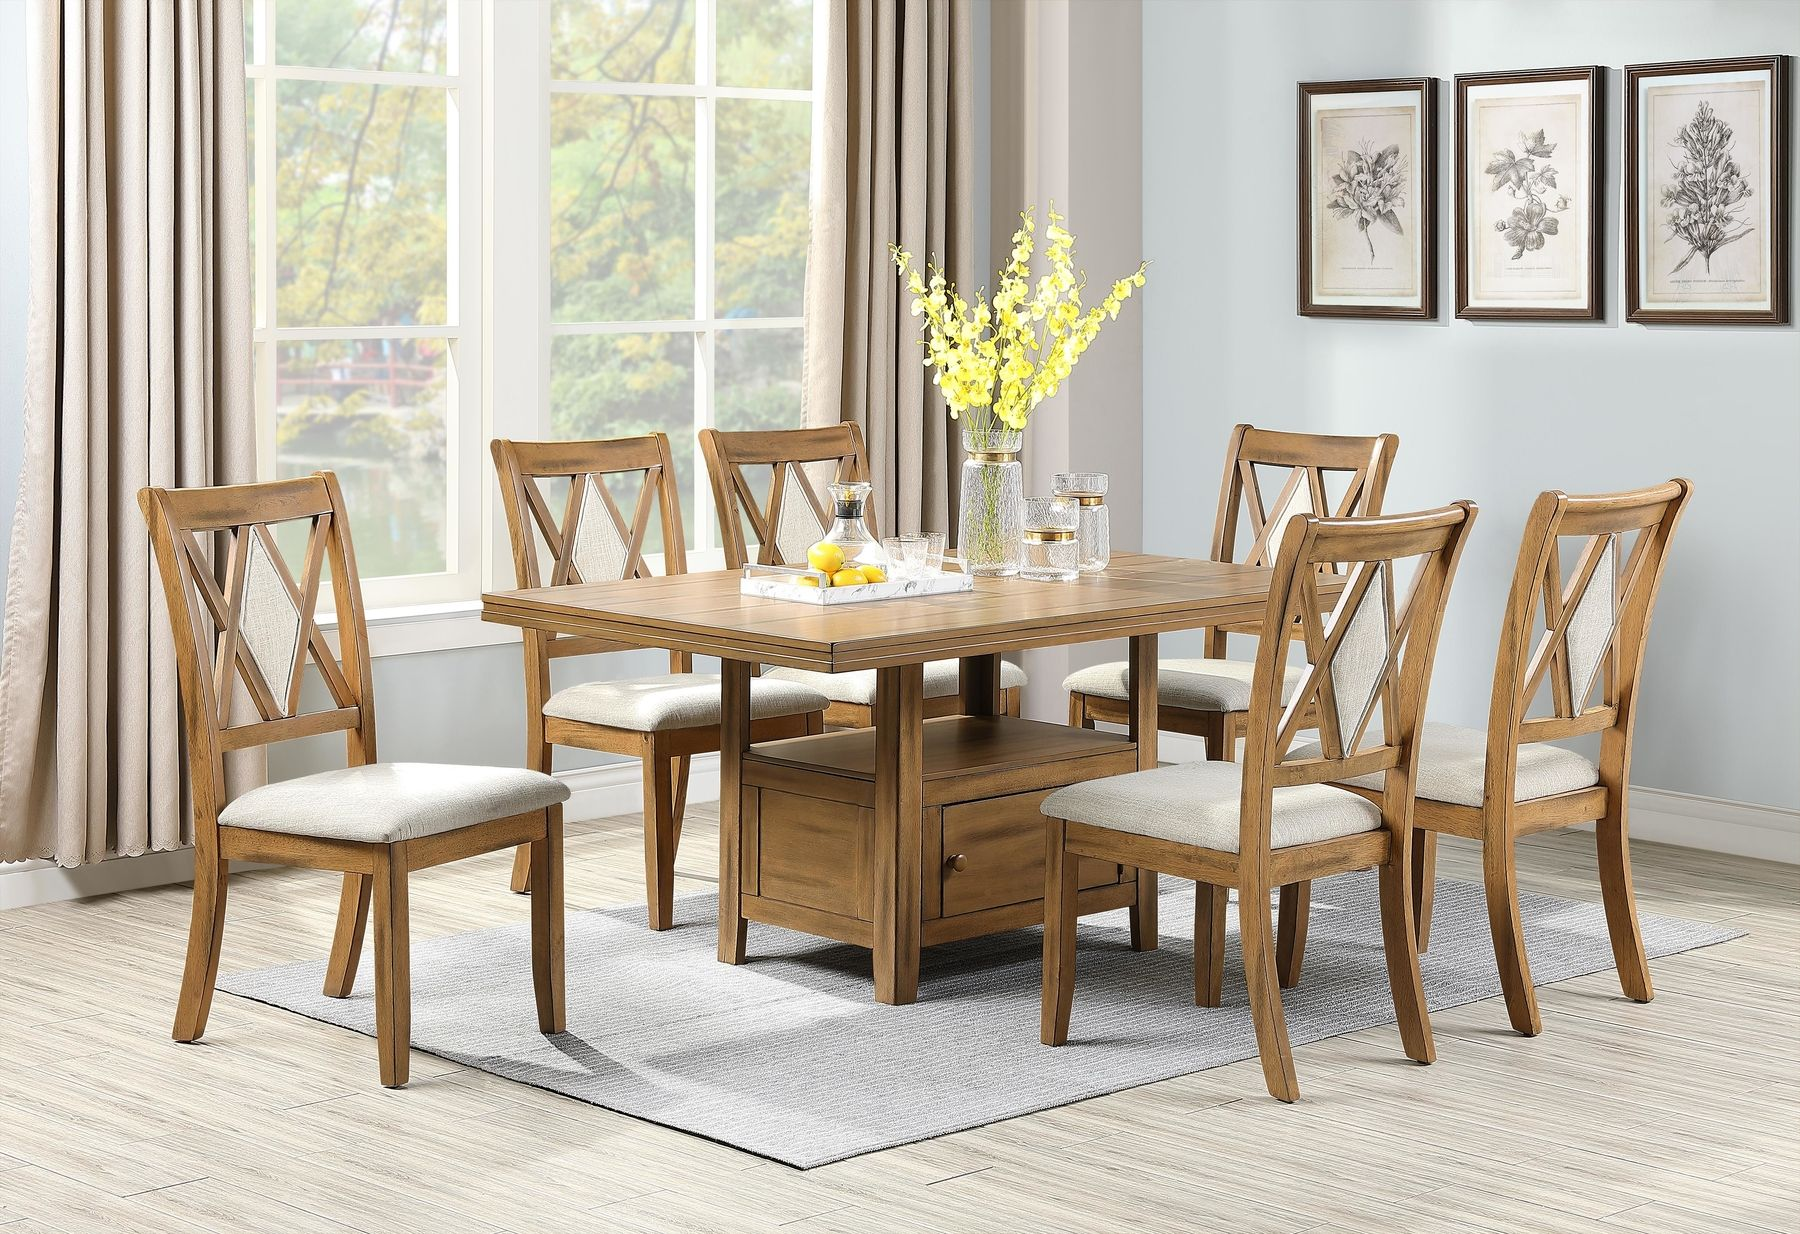 P2492 Table In 2020 Dining Table Table Dining